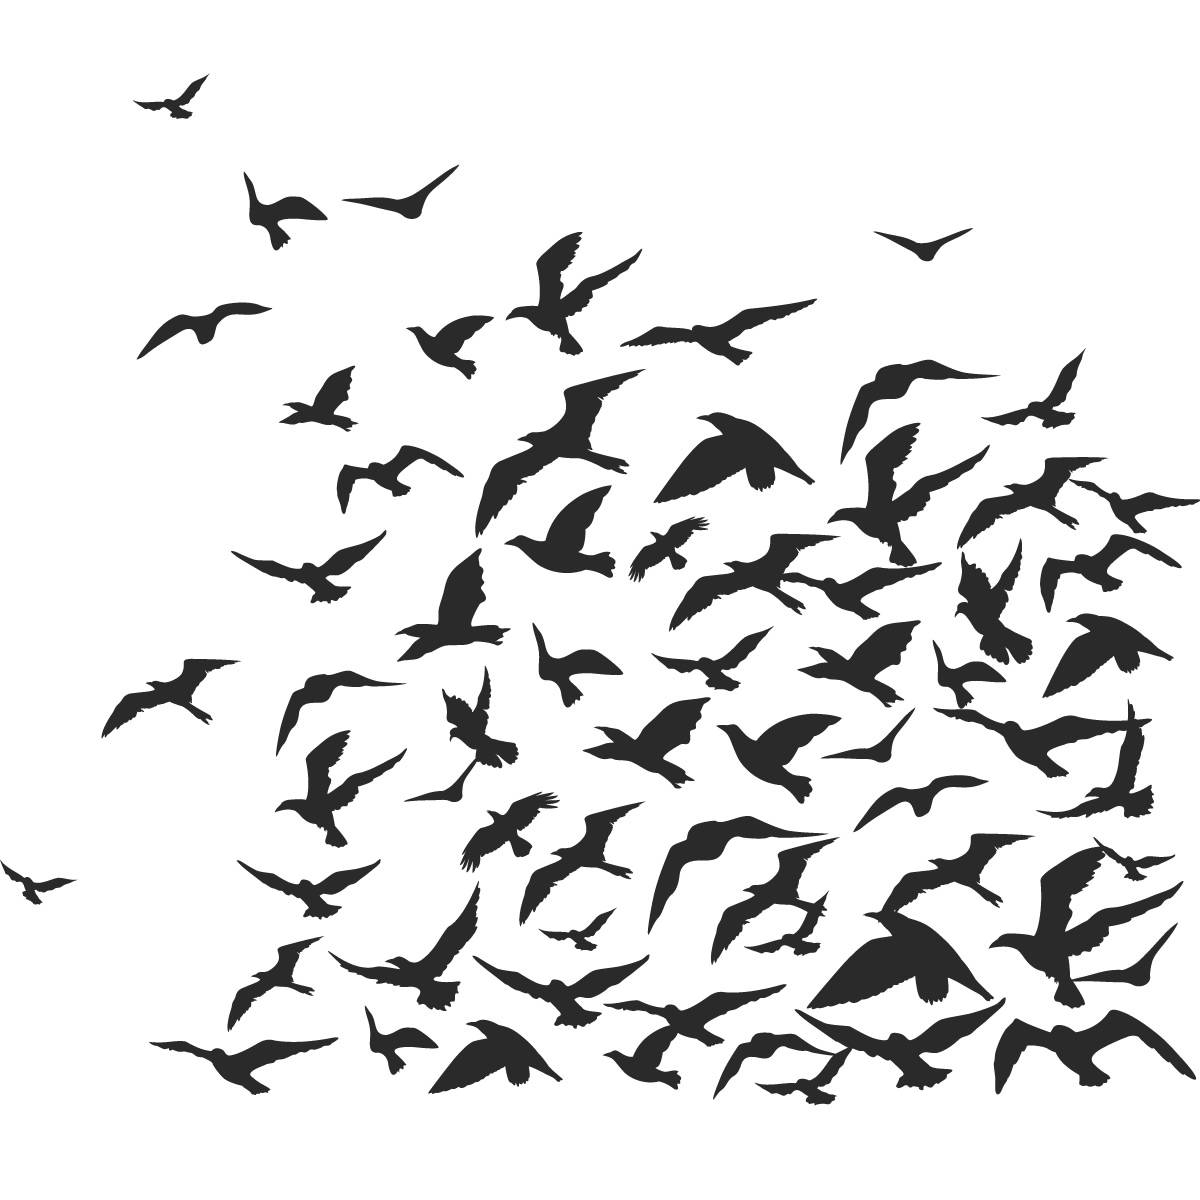 Amazing Wall Art Birds Flying Natures Kiss Birds Wall Wall Art Intended For 2018 Flock Of Birds Wall Art (View 2 of 25)